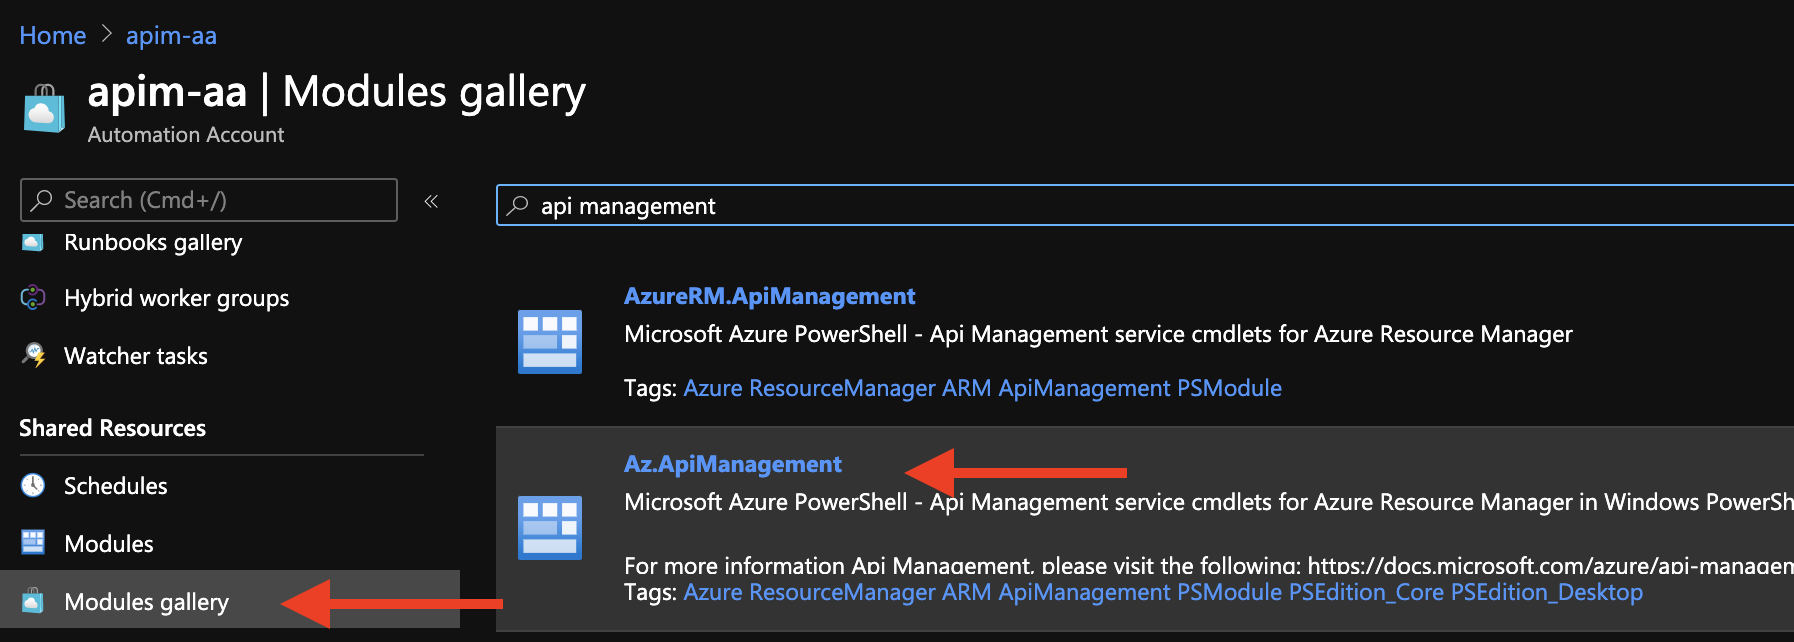 Az.ApiManagement PowerShell Module